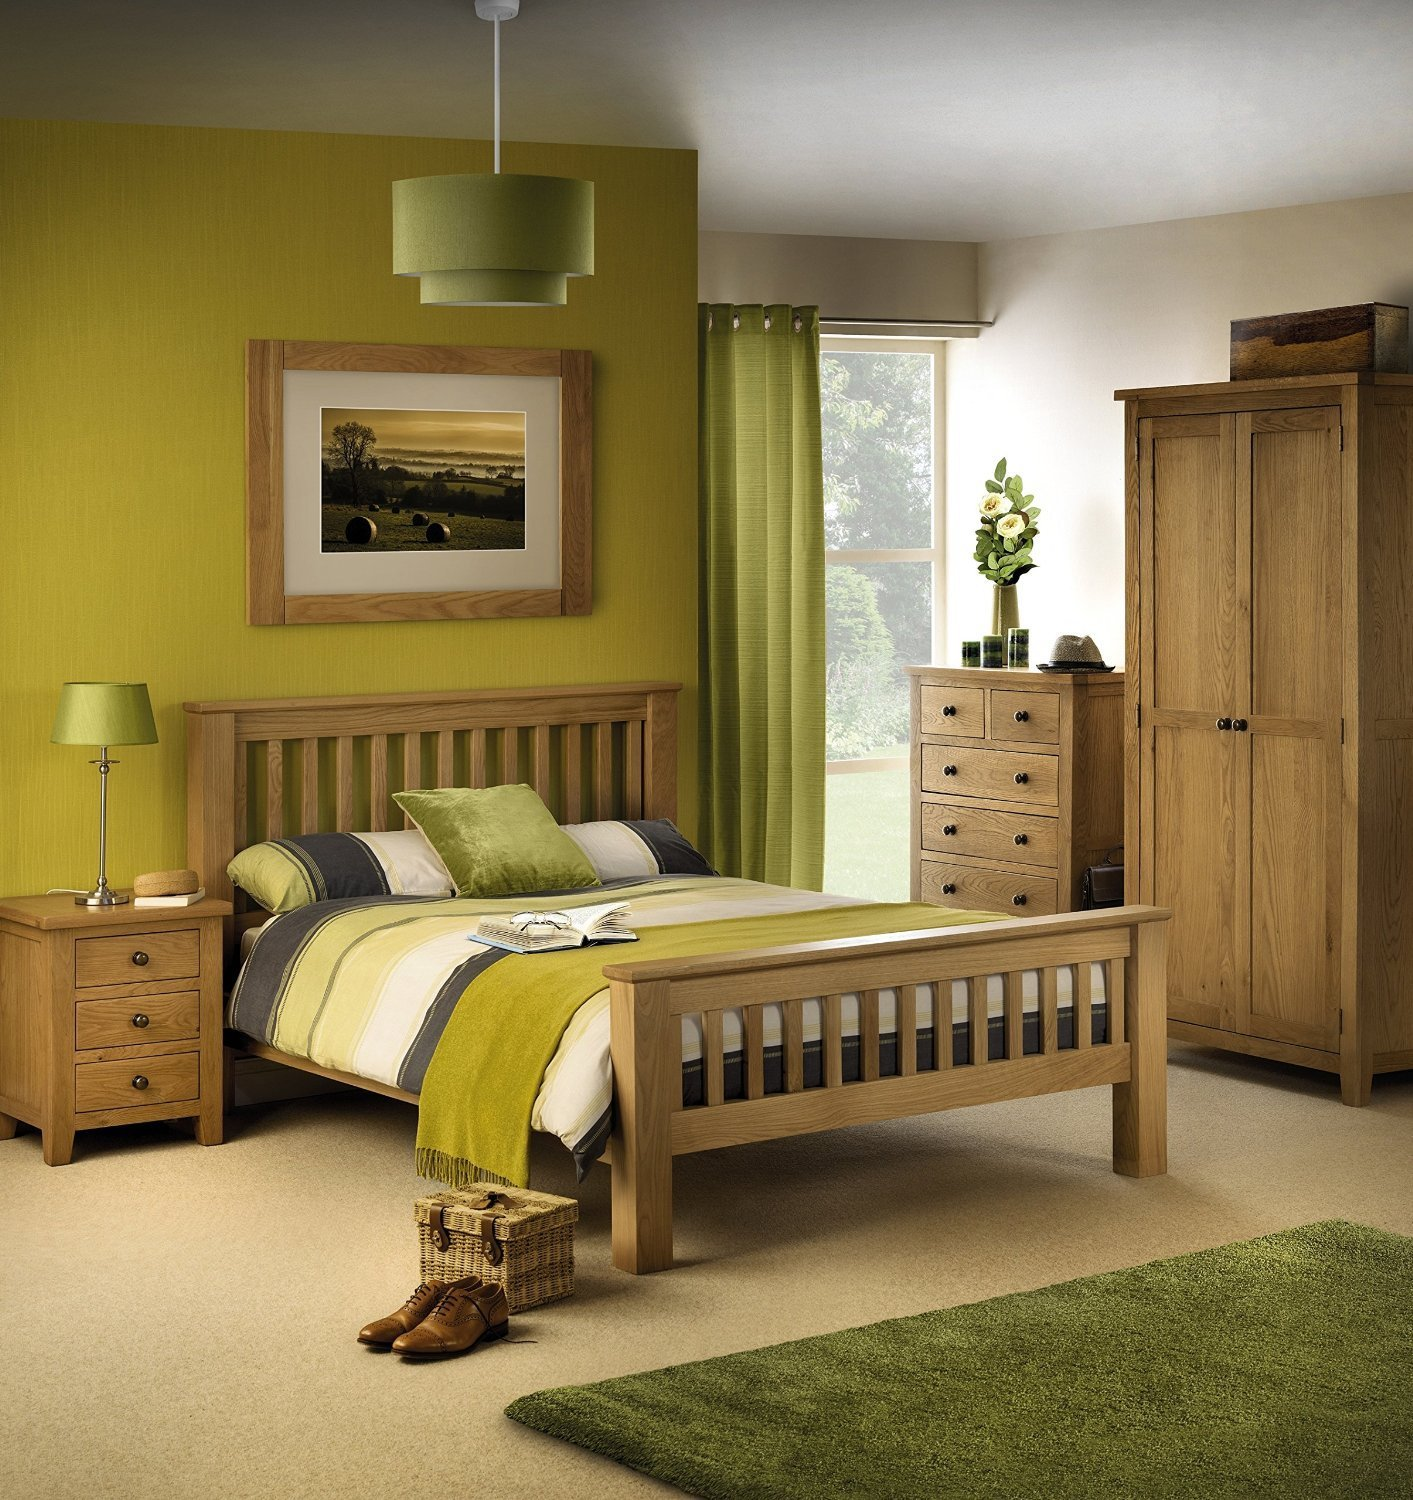 Best Dublin Solid Waxed Oak Bedroom Furniture Thanet Beds With Pictures